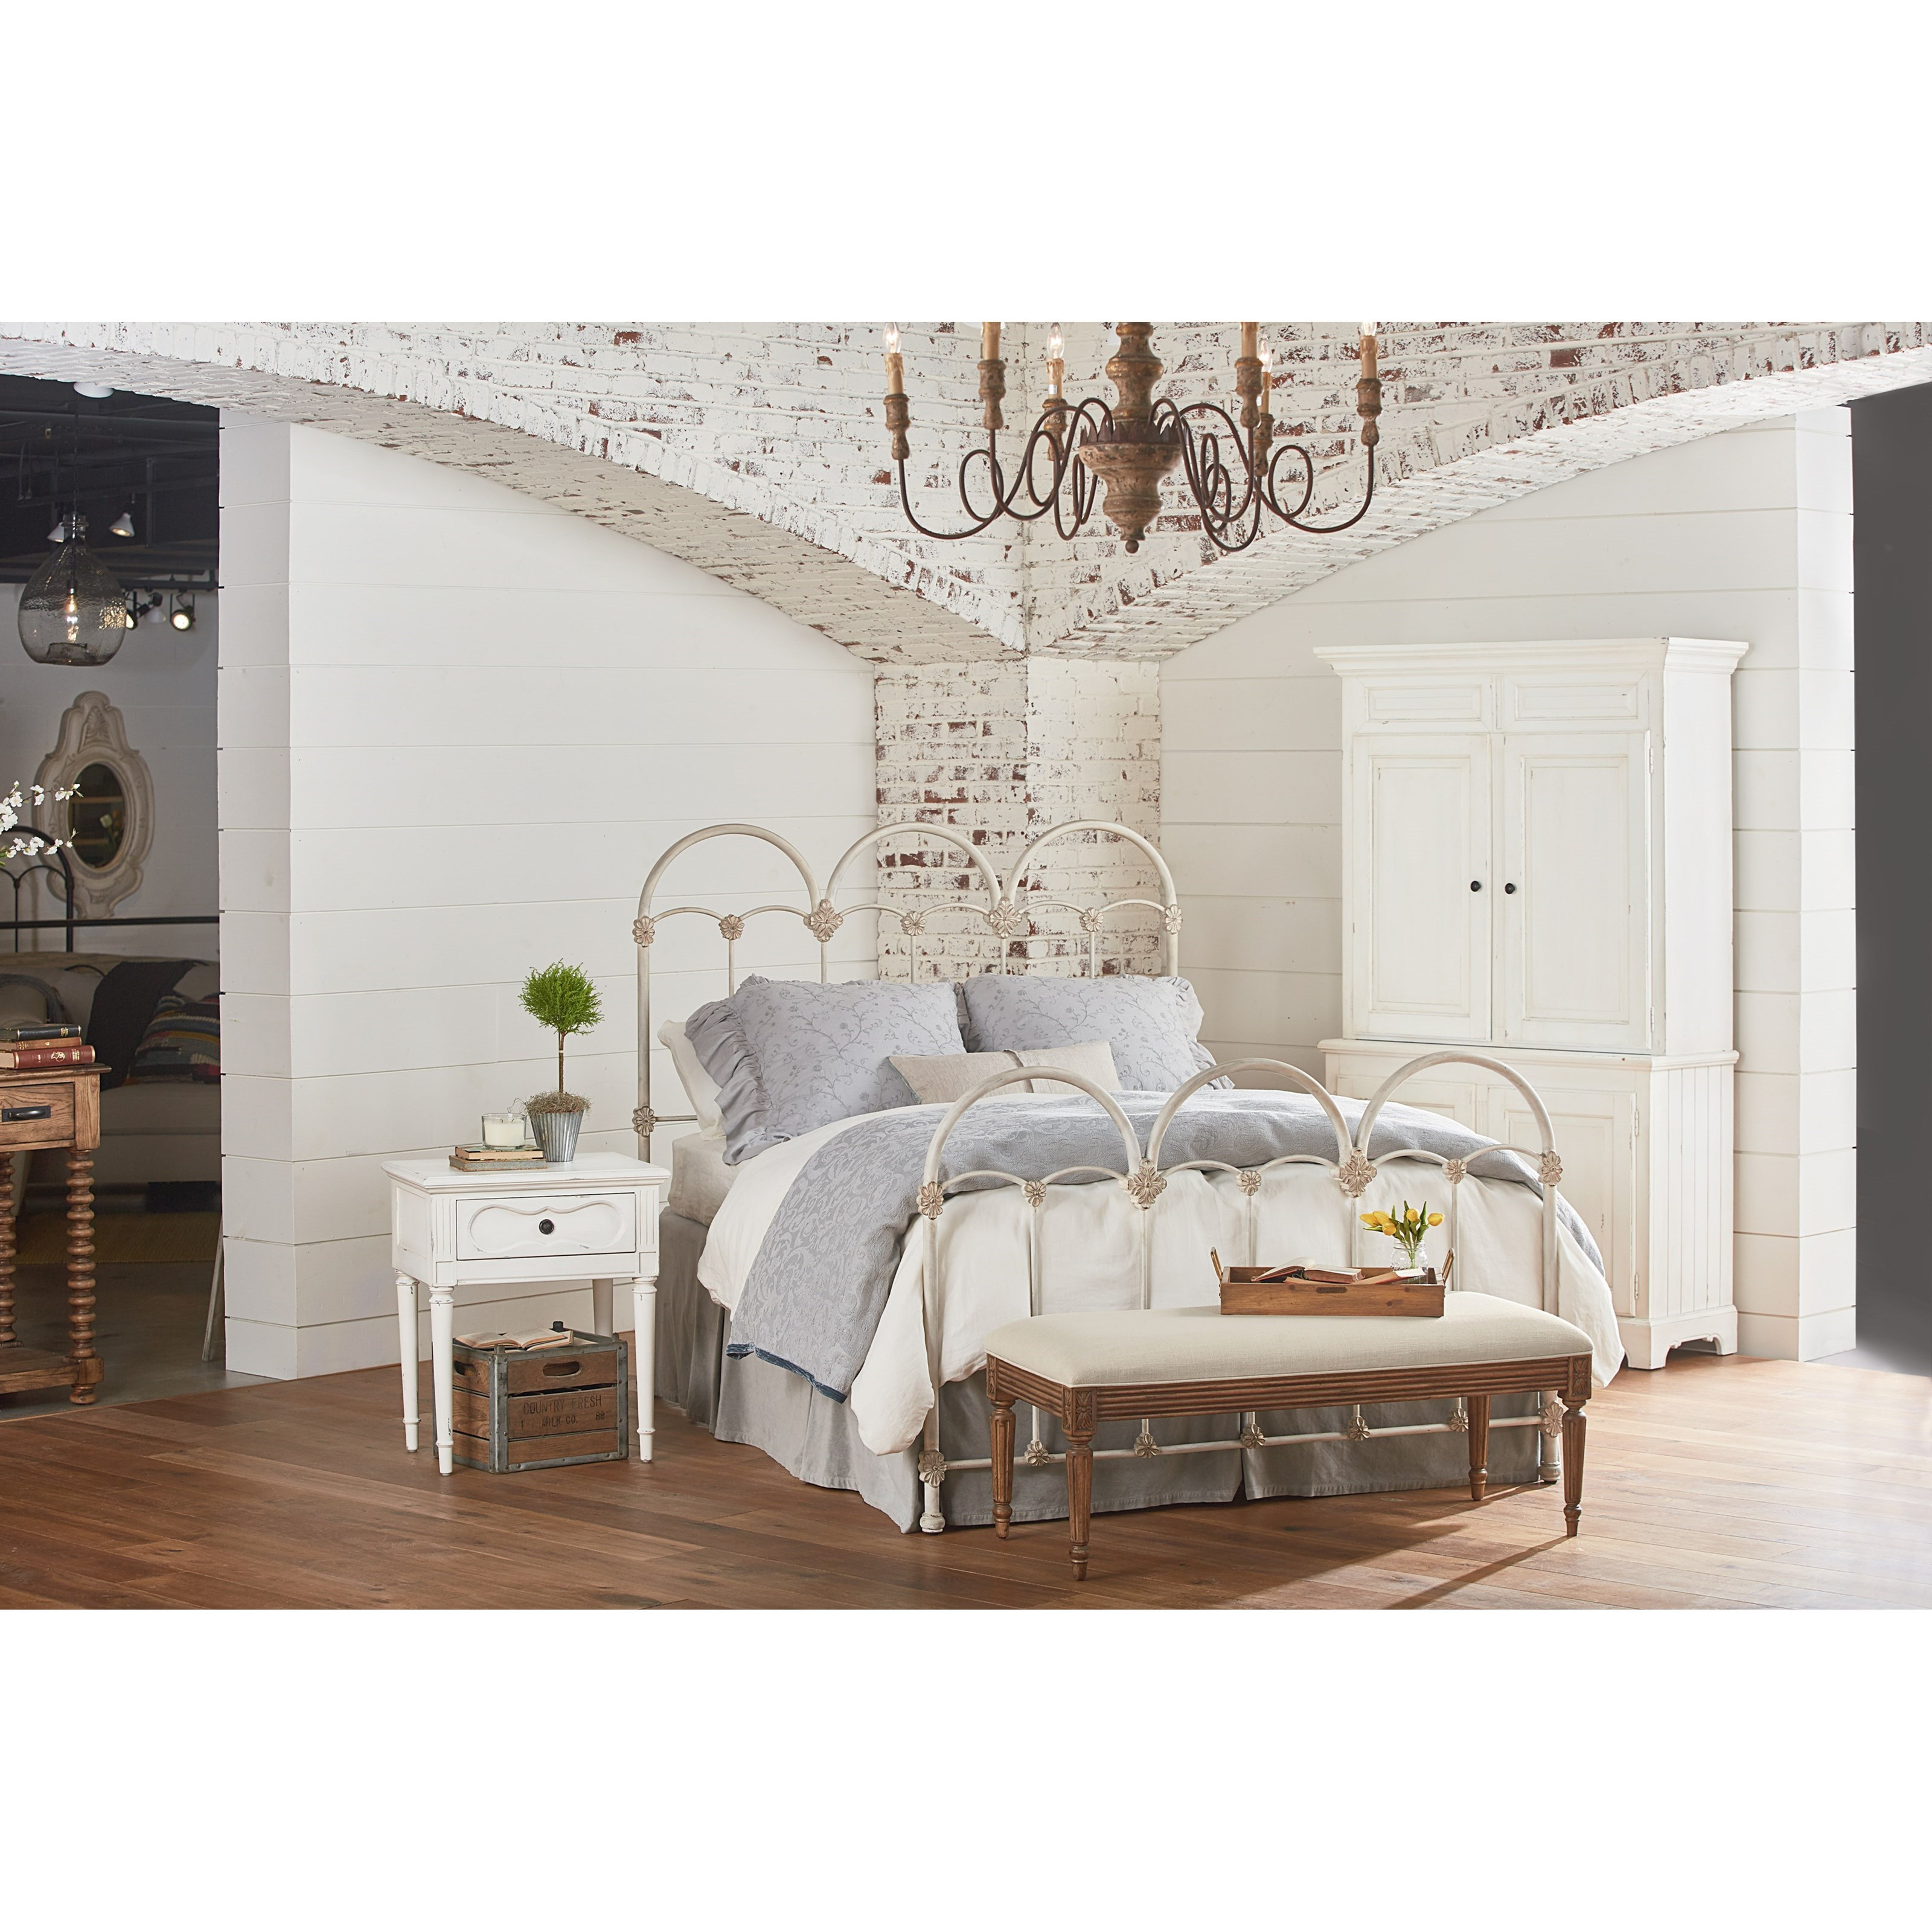 queen rosette iron bed - White Iron Bed Frame Queen